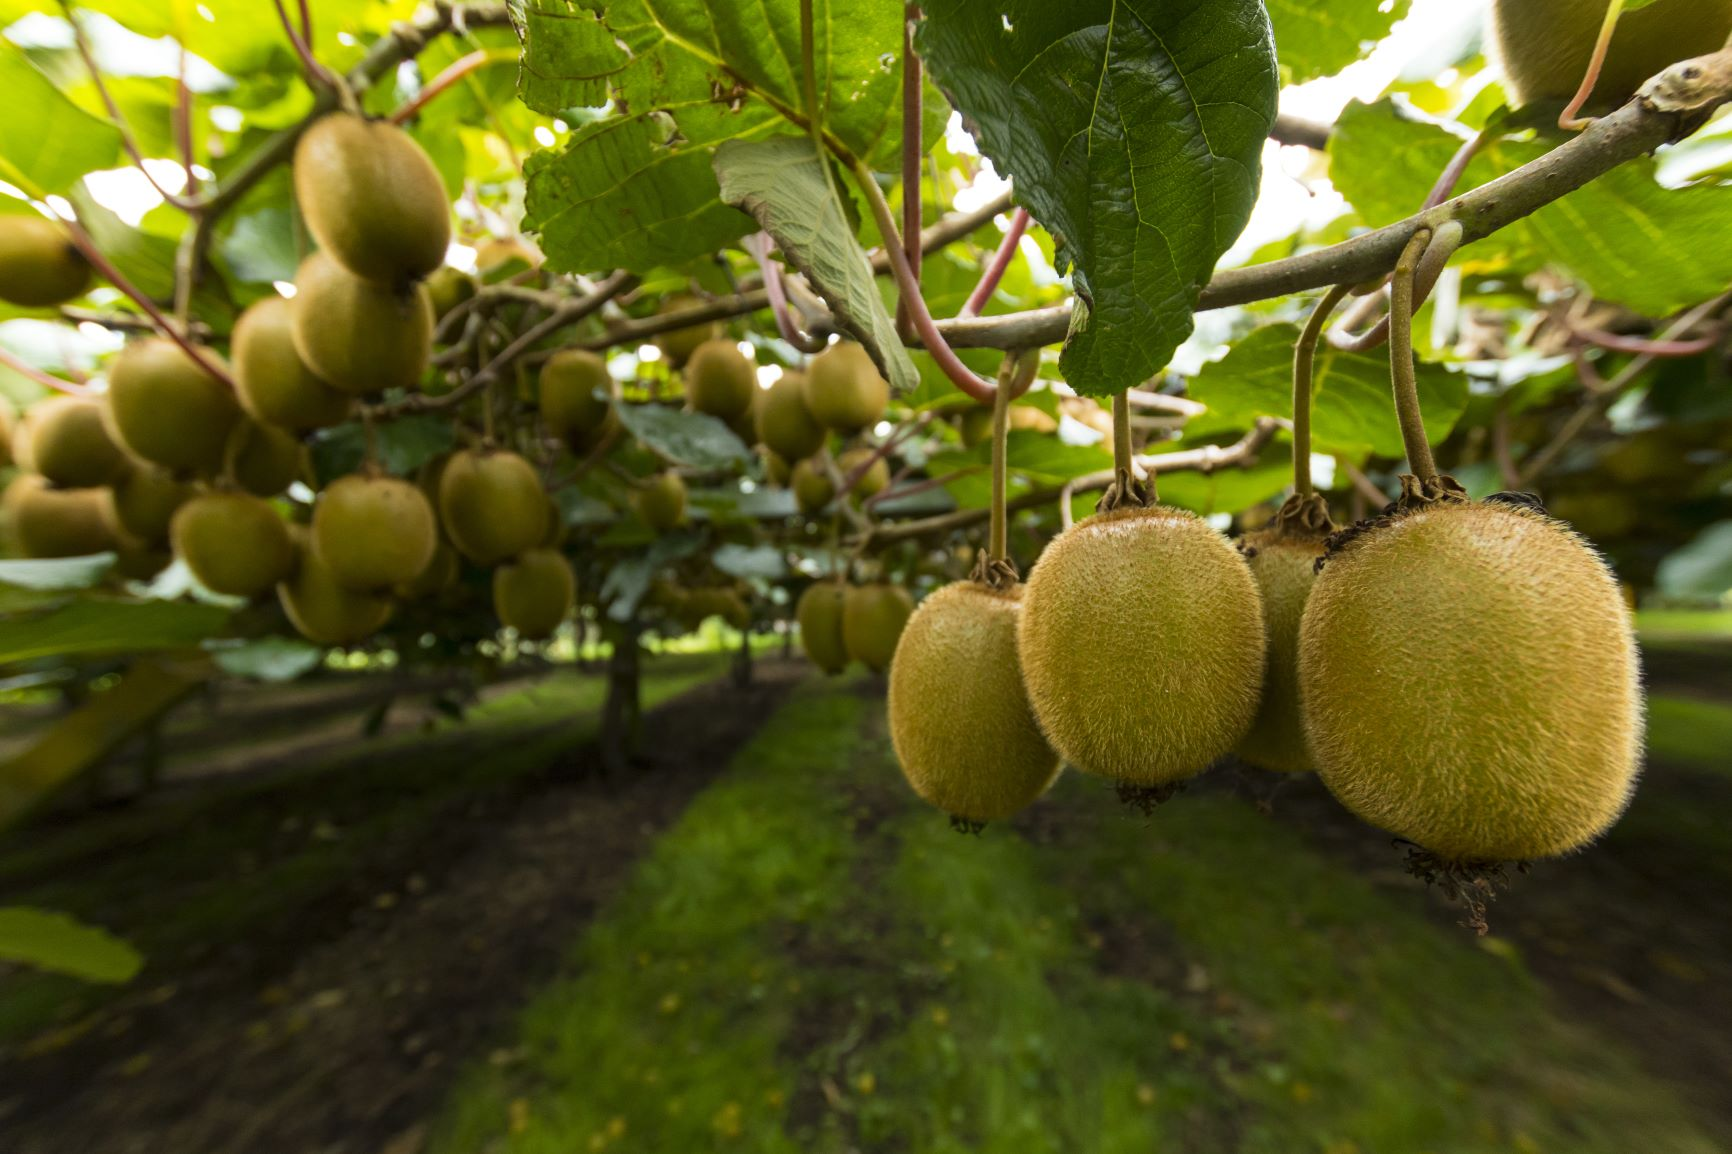 Kiwifruit could combat gluten intolerance